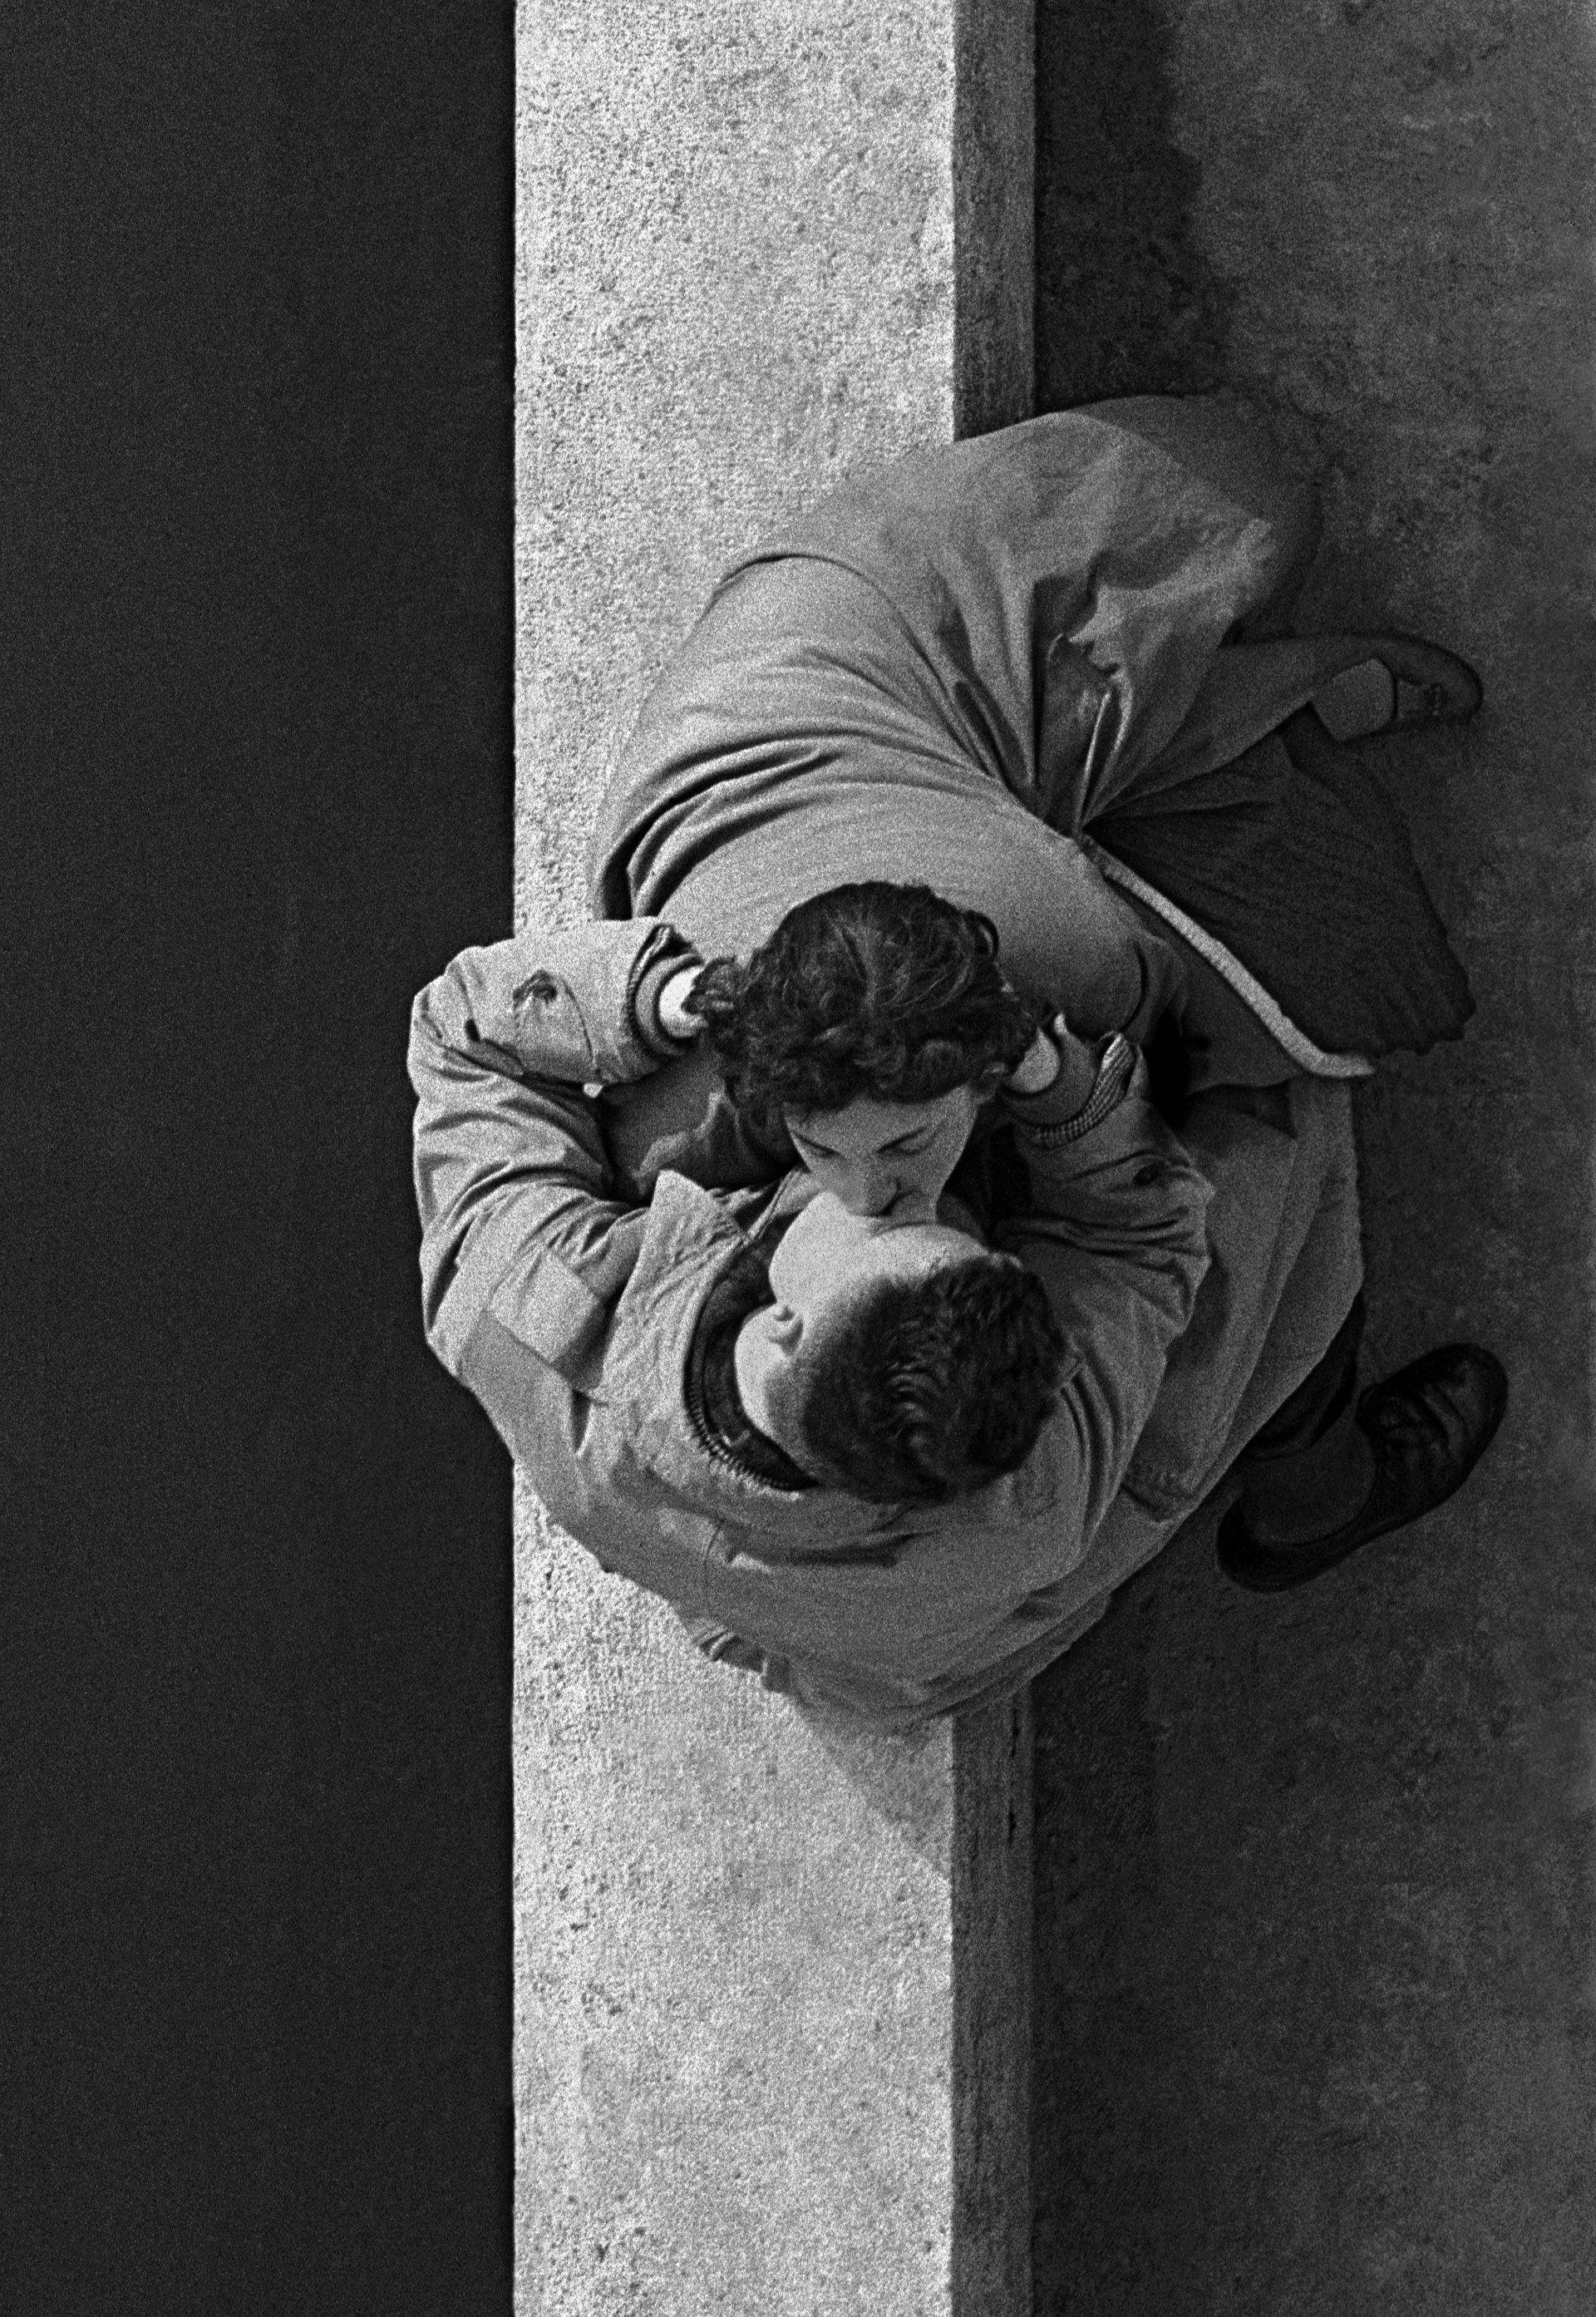 Quai du Louvre, couple, 1955, Paris, France © Frank Horvat